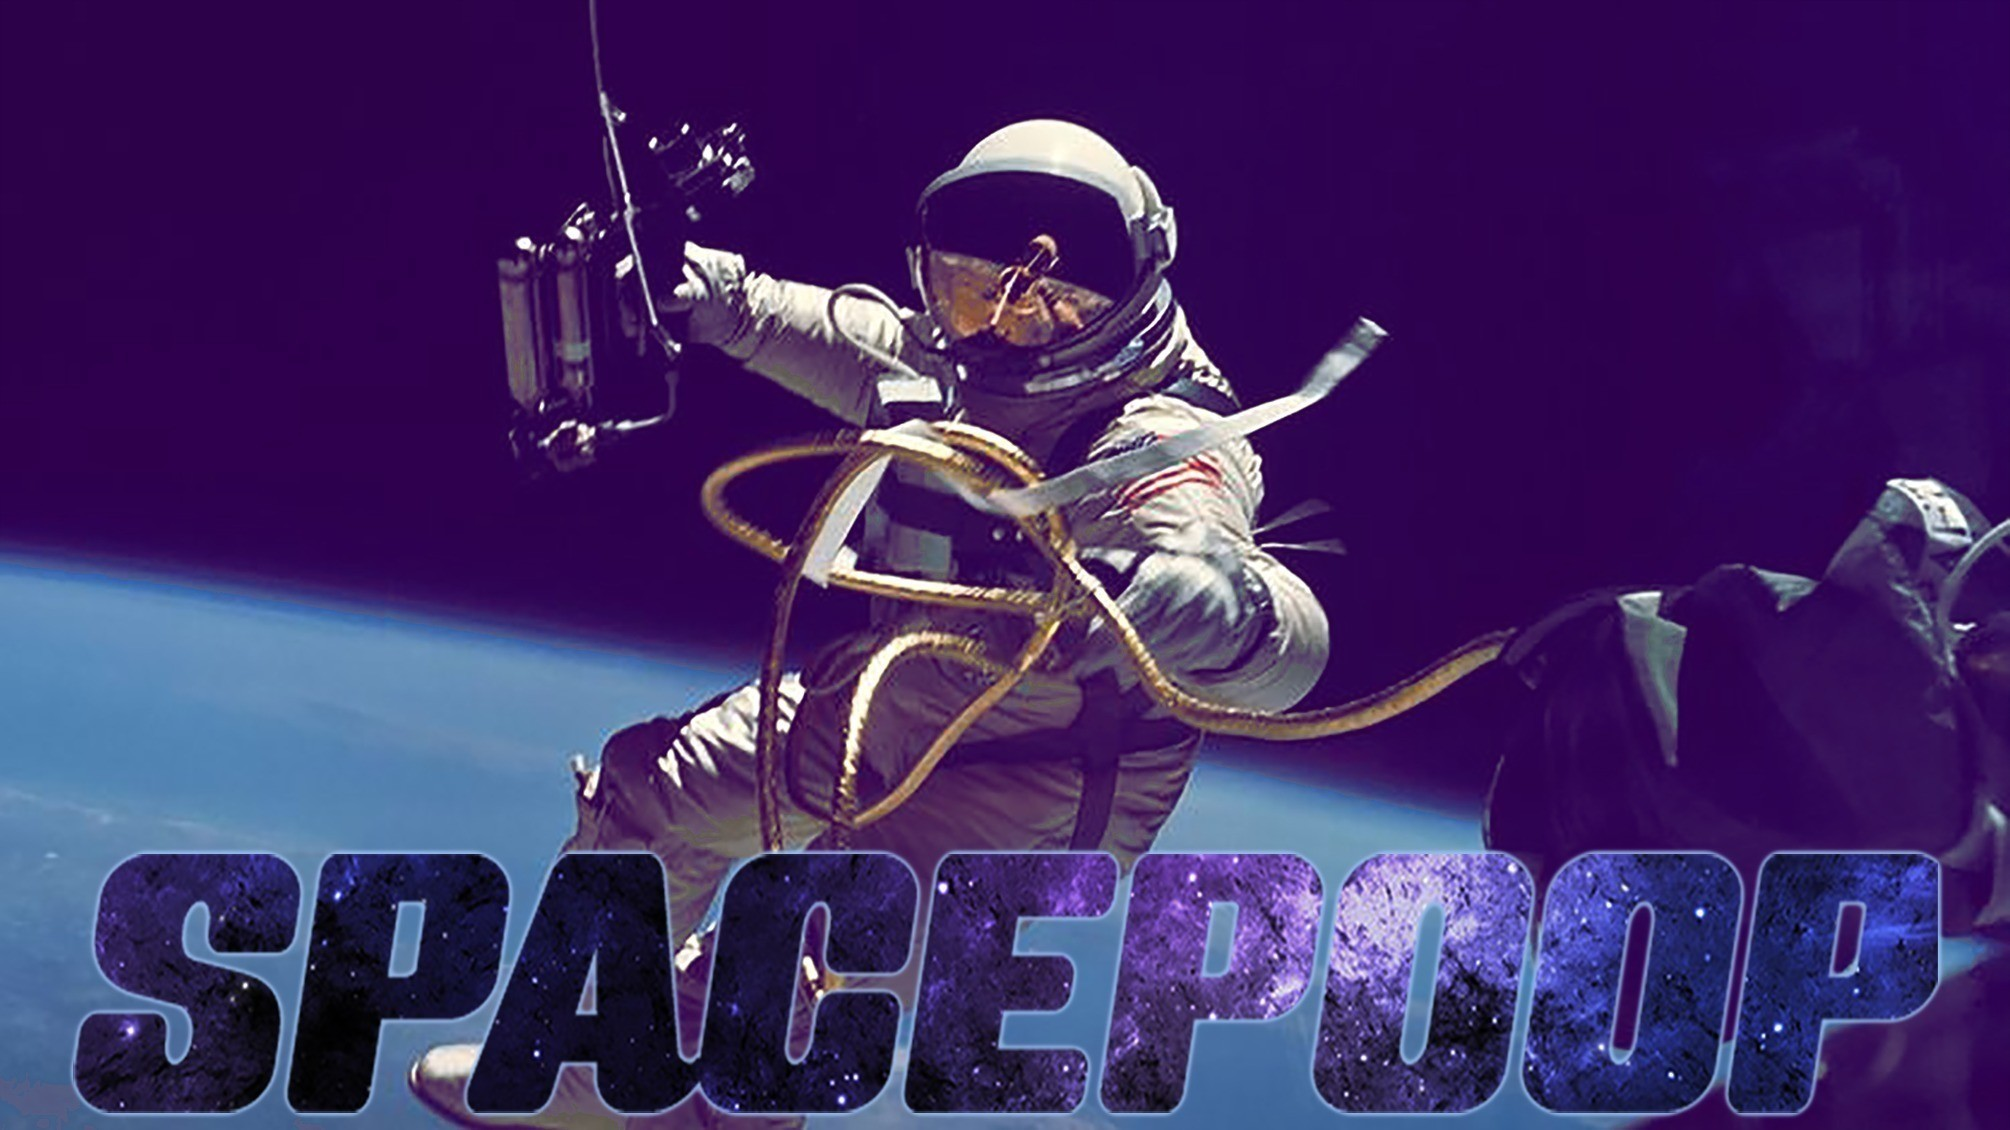 Space Poop Problem-Solvers Take Home Cash Prizes From NASA